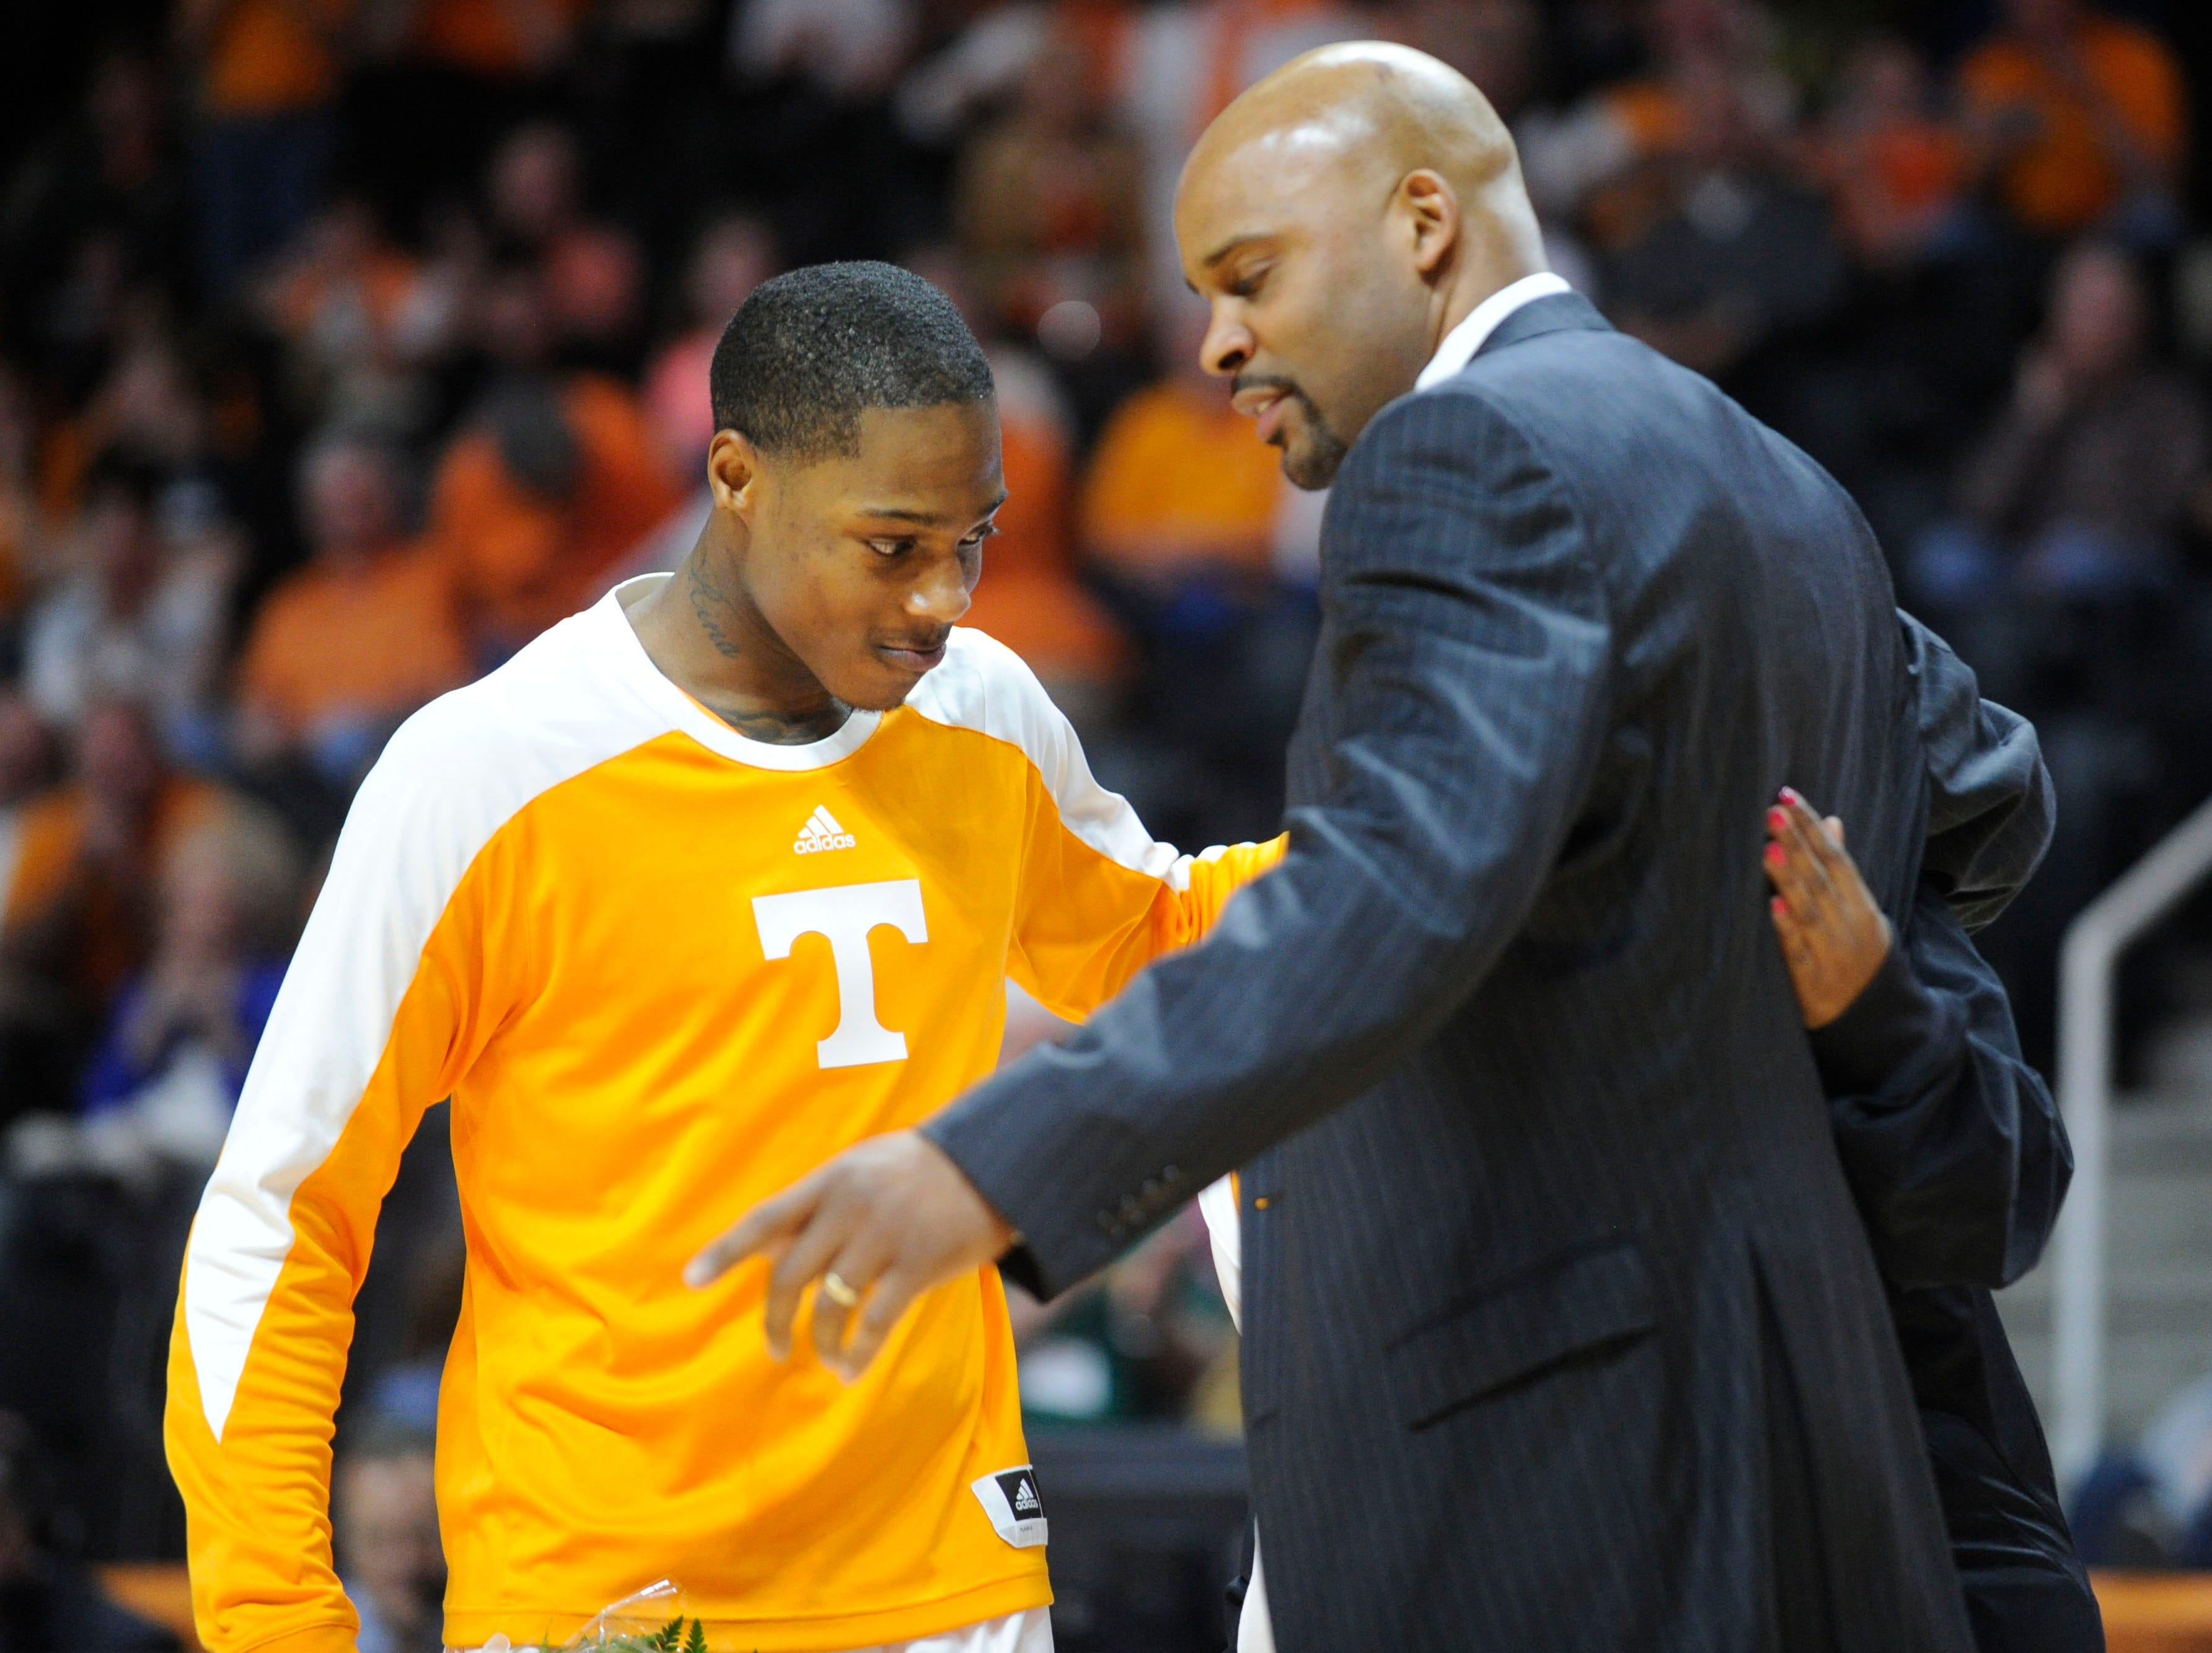 Tennessee guard Antonio Barton (2), left, gets a hug from Tennessee head coach Cuonzo Martin as he is recognized on senior day before Tennessee's game against Missouri at the Thompson-Boling Arena in Knoxville on Saturday, March 8, 2014.